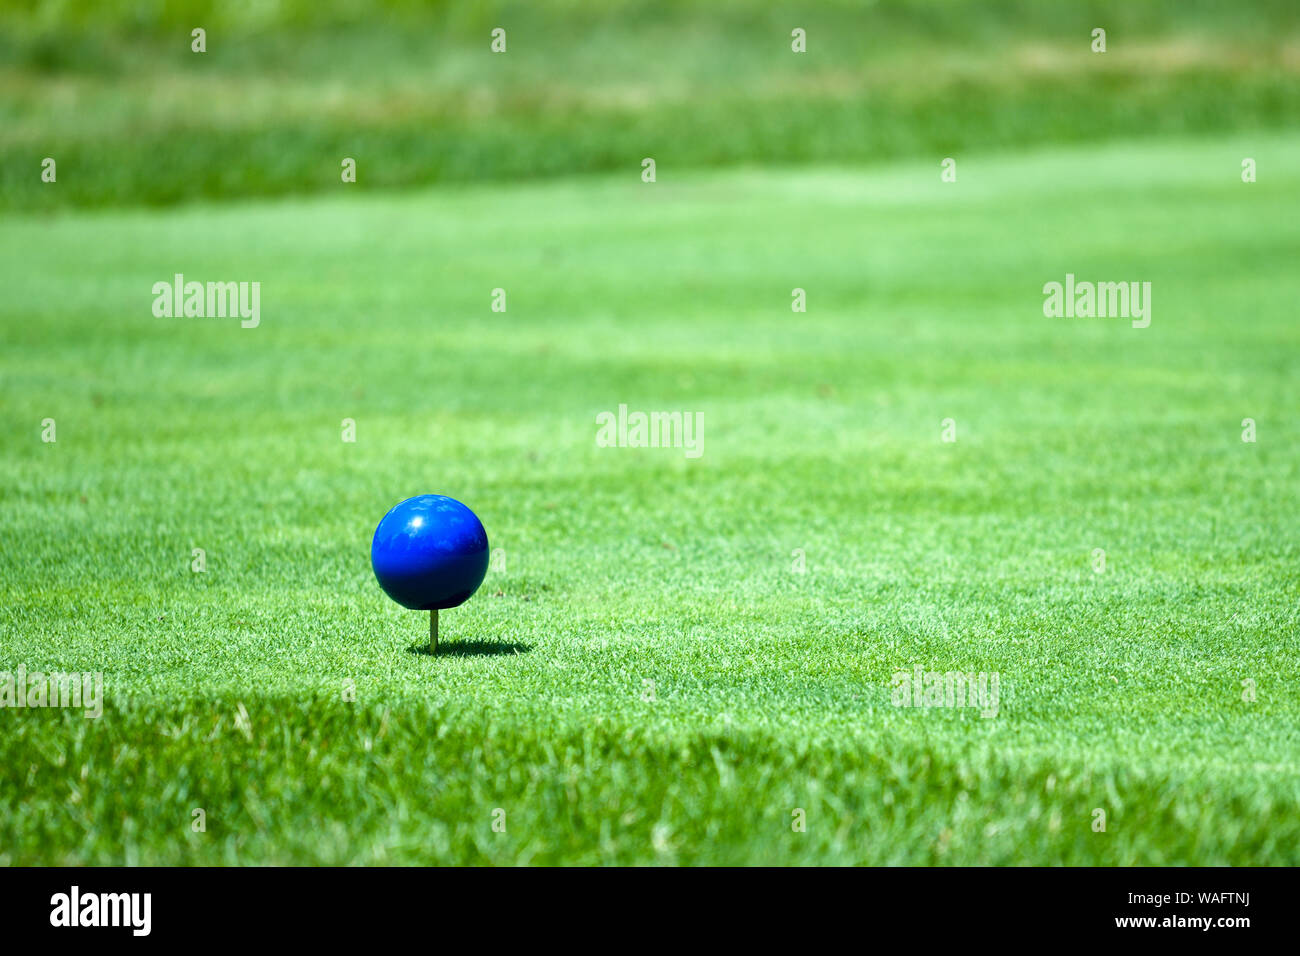 Tee Marker High Resolution Stock Photography And Images Alamy